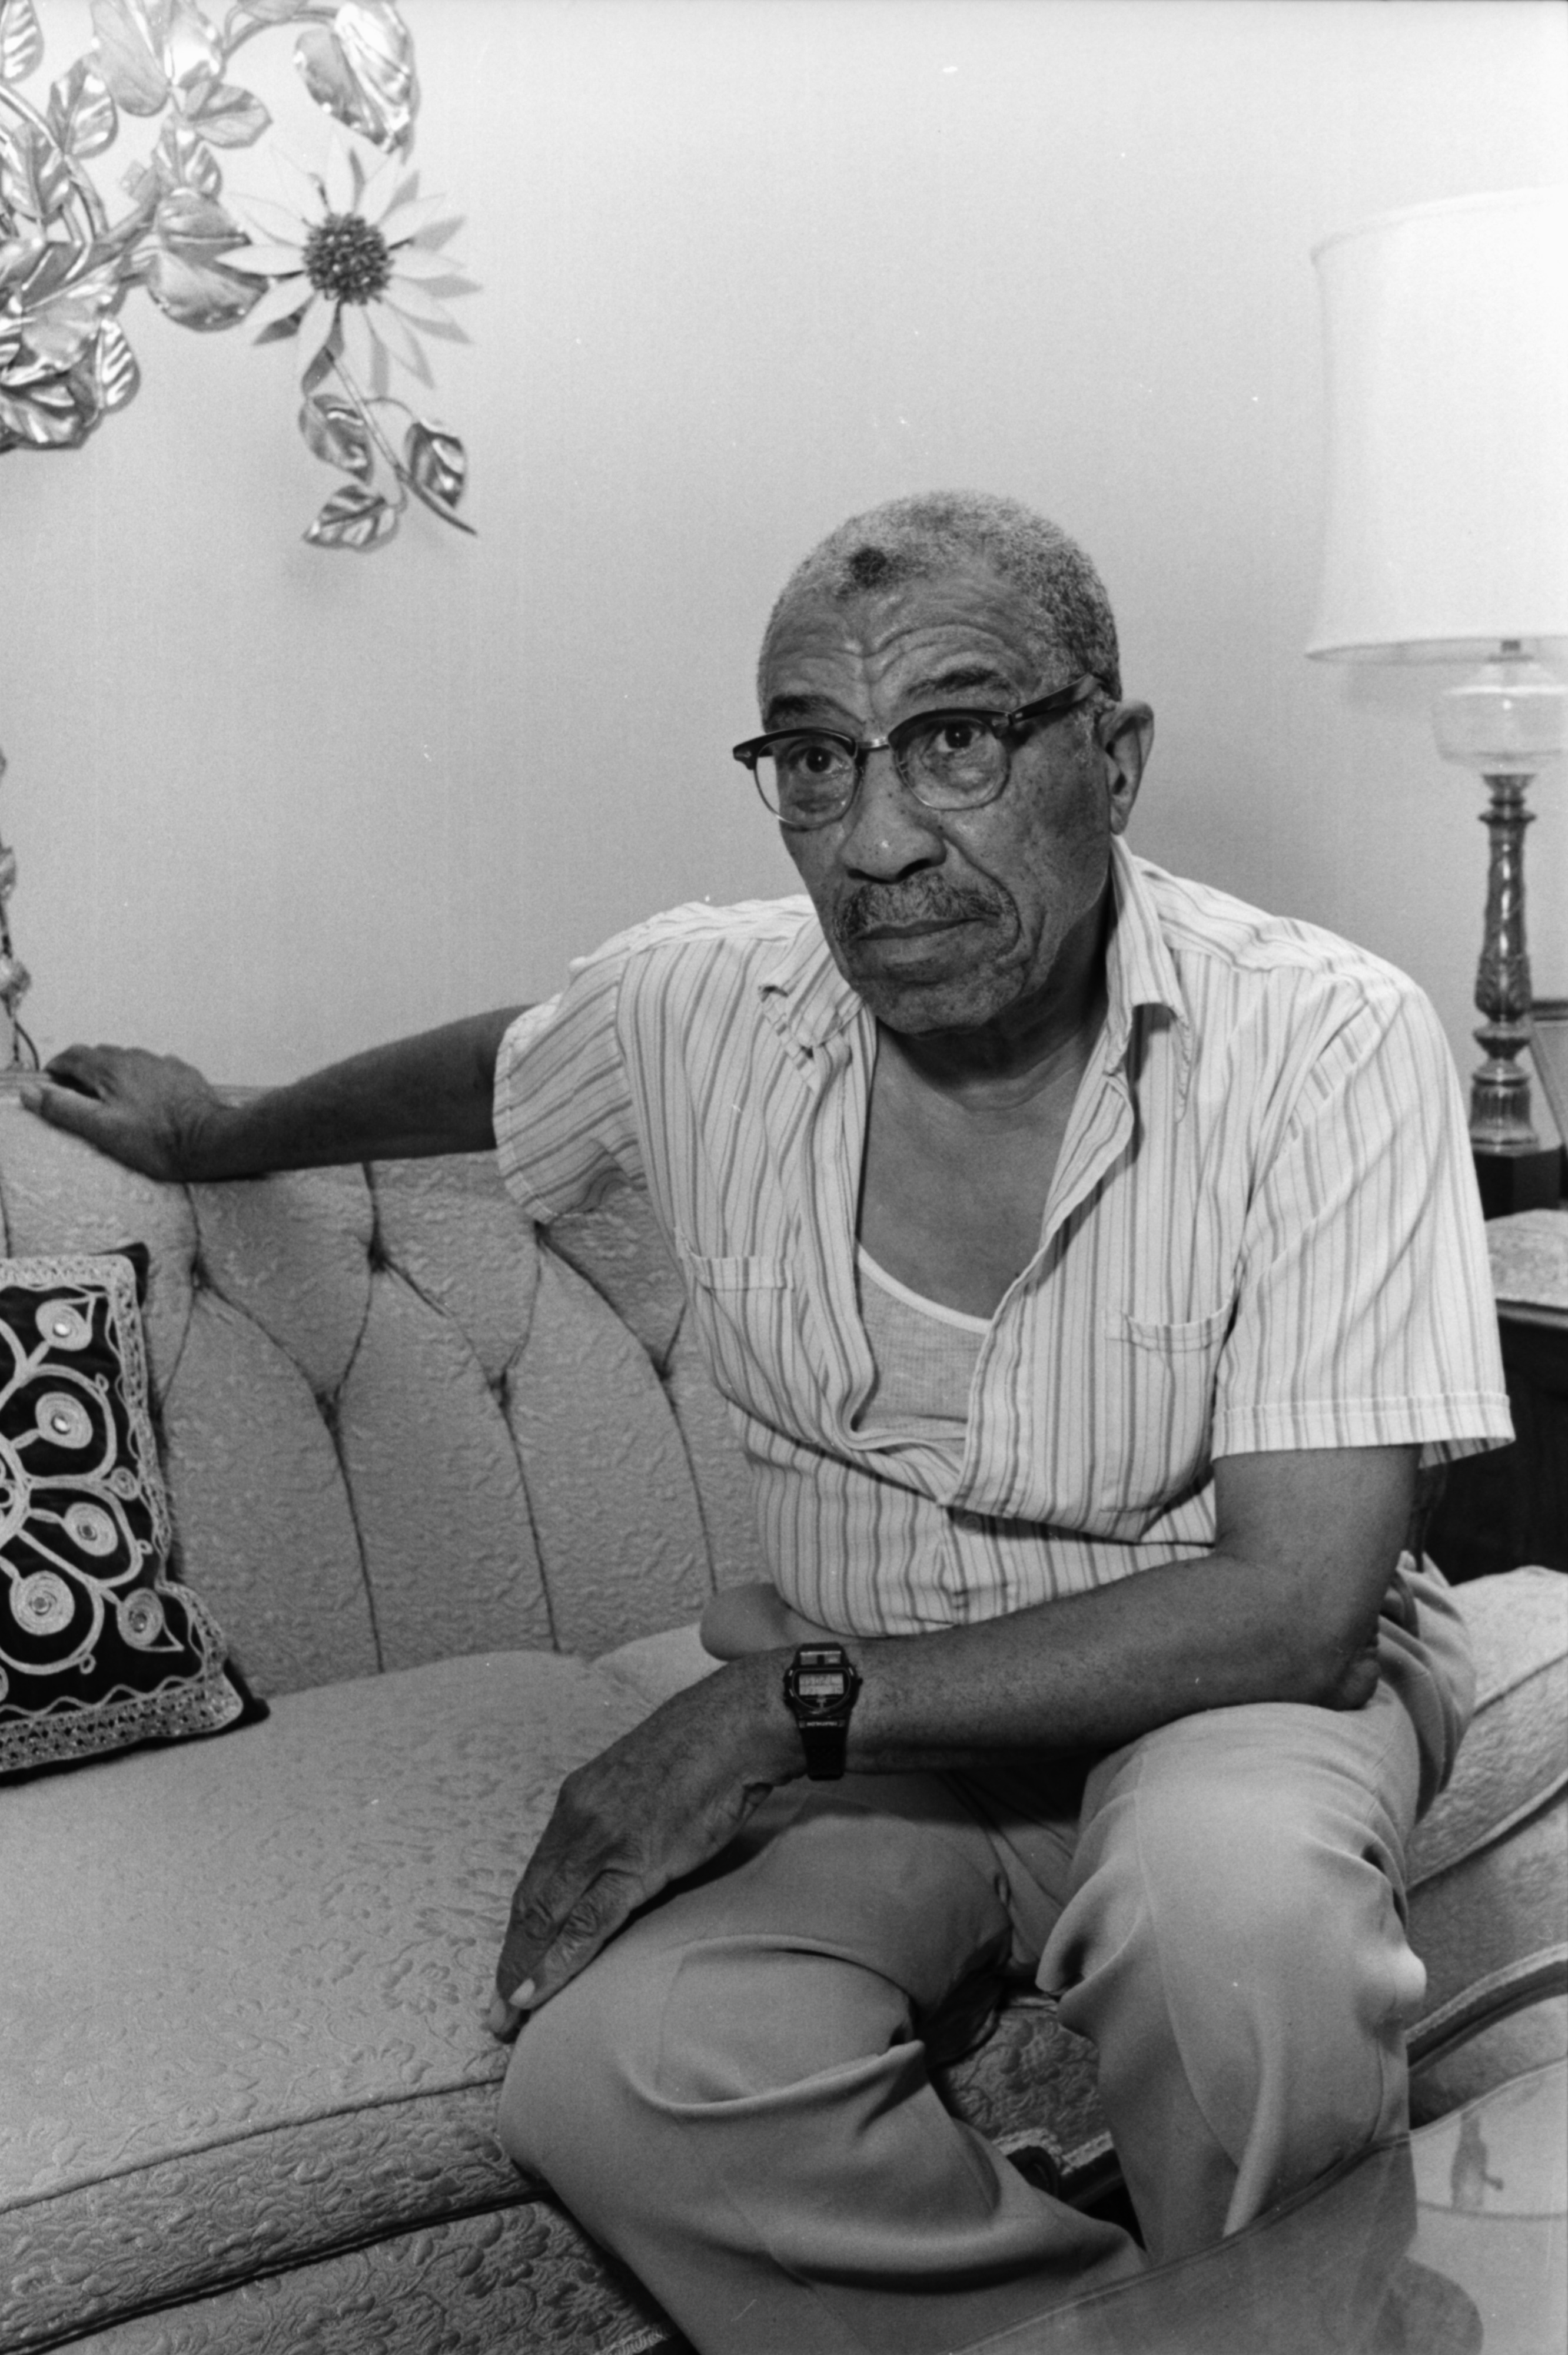 Ypsilanti Historian A.P. Marshall Seated on Couch, July 1987 image